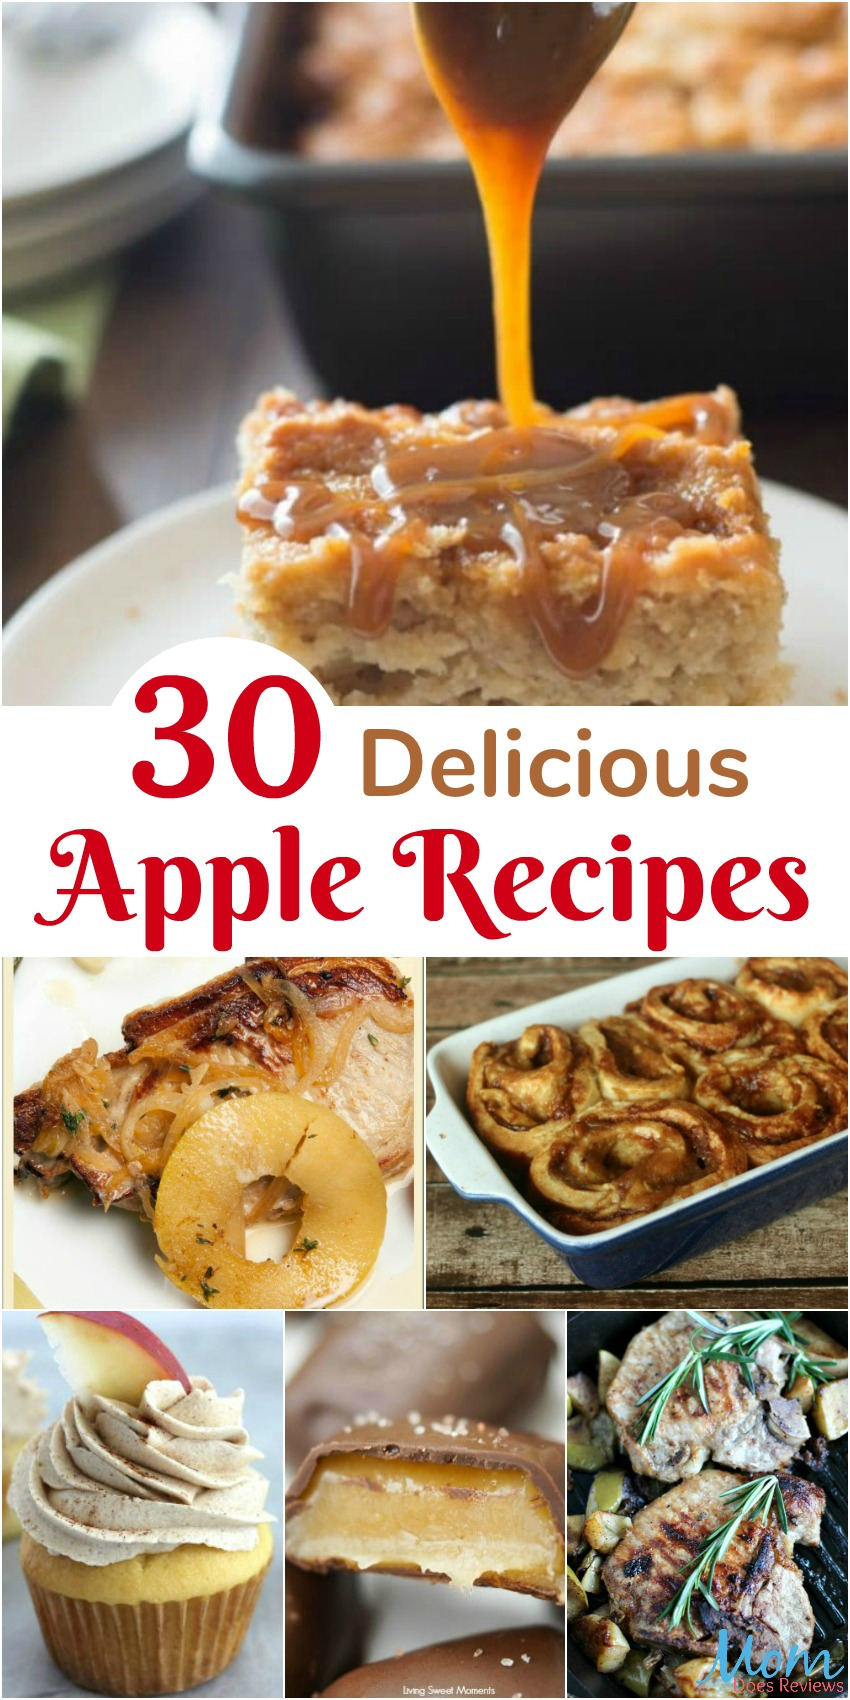 30 Delicious Apple Recipes for Fall's Apple Harvest